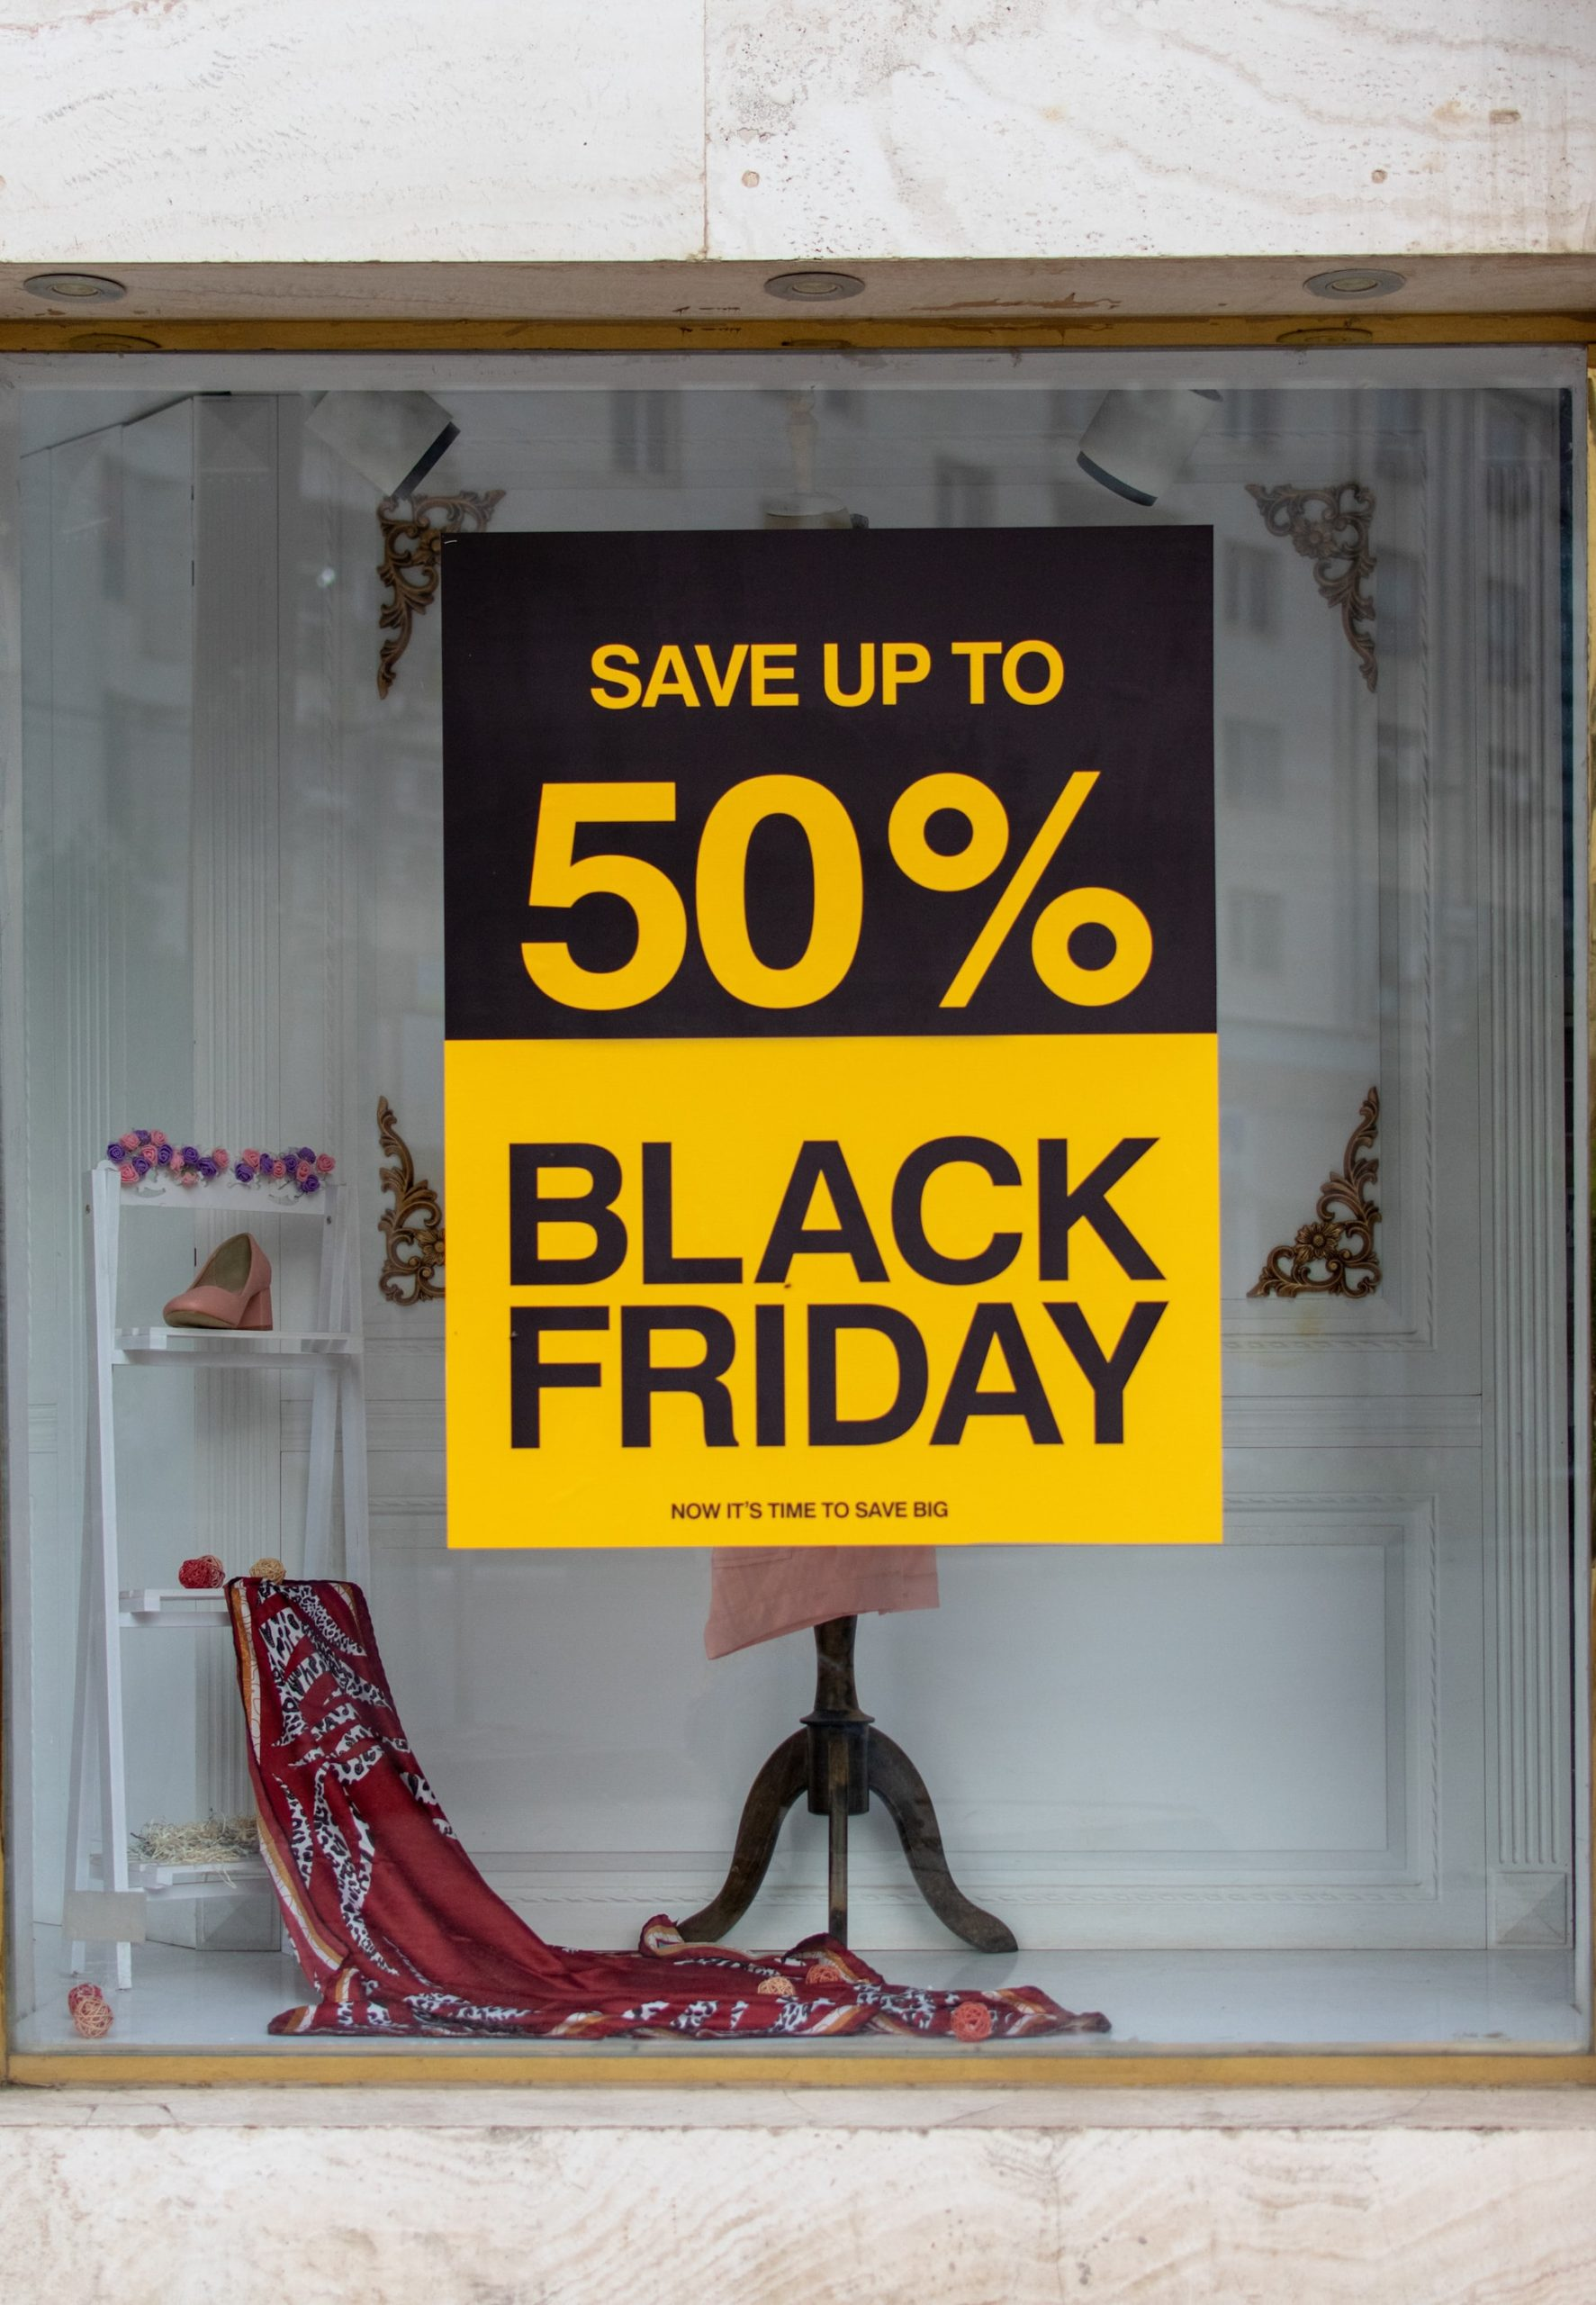 Best Black Friday Deals Article Image